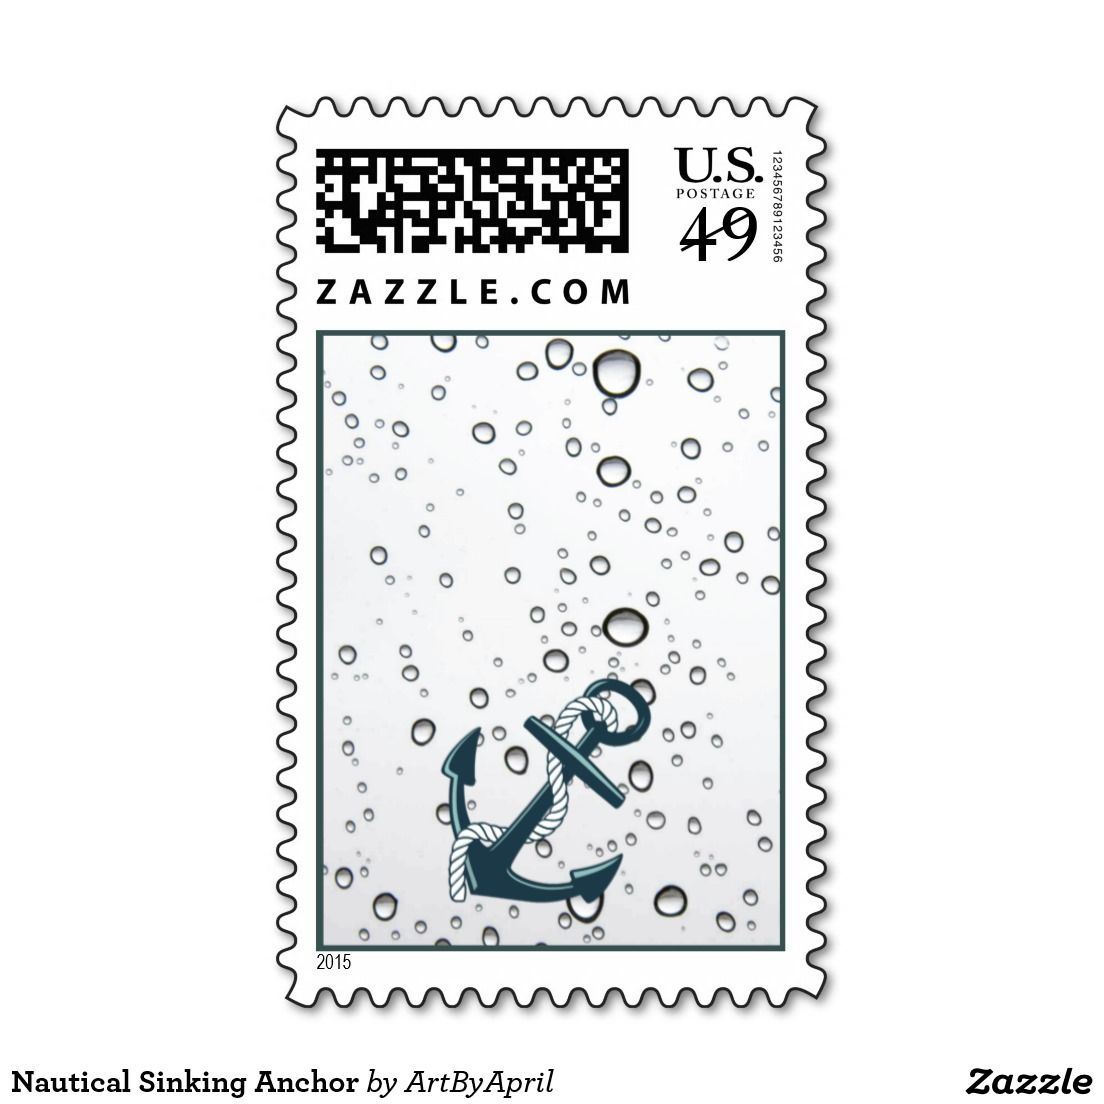 Nauticastampl Sinking Anchor Postage With Images